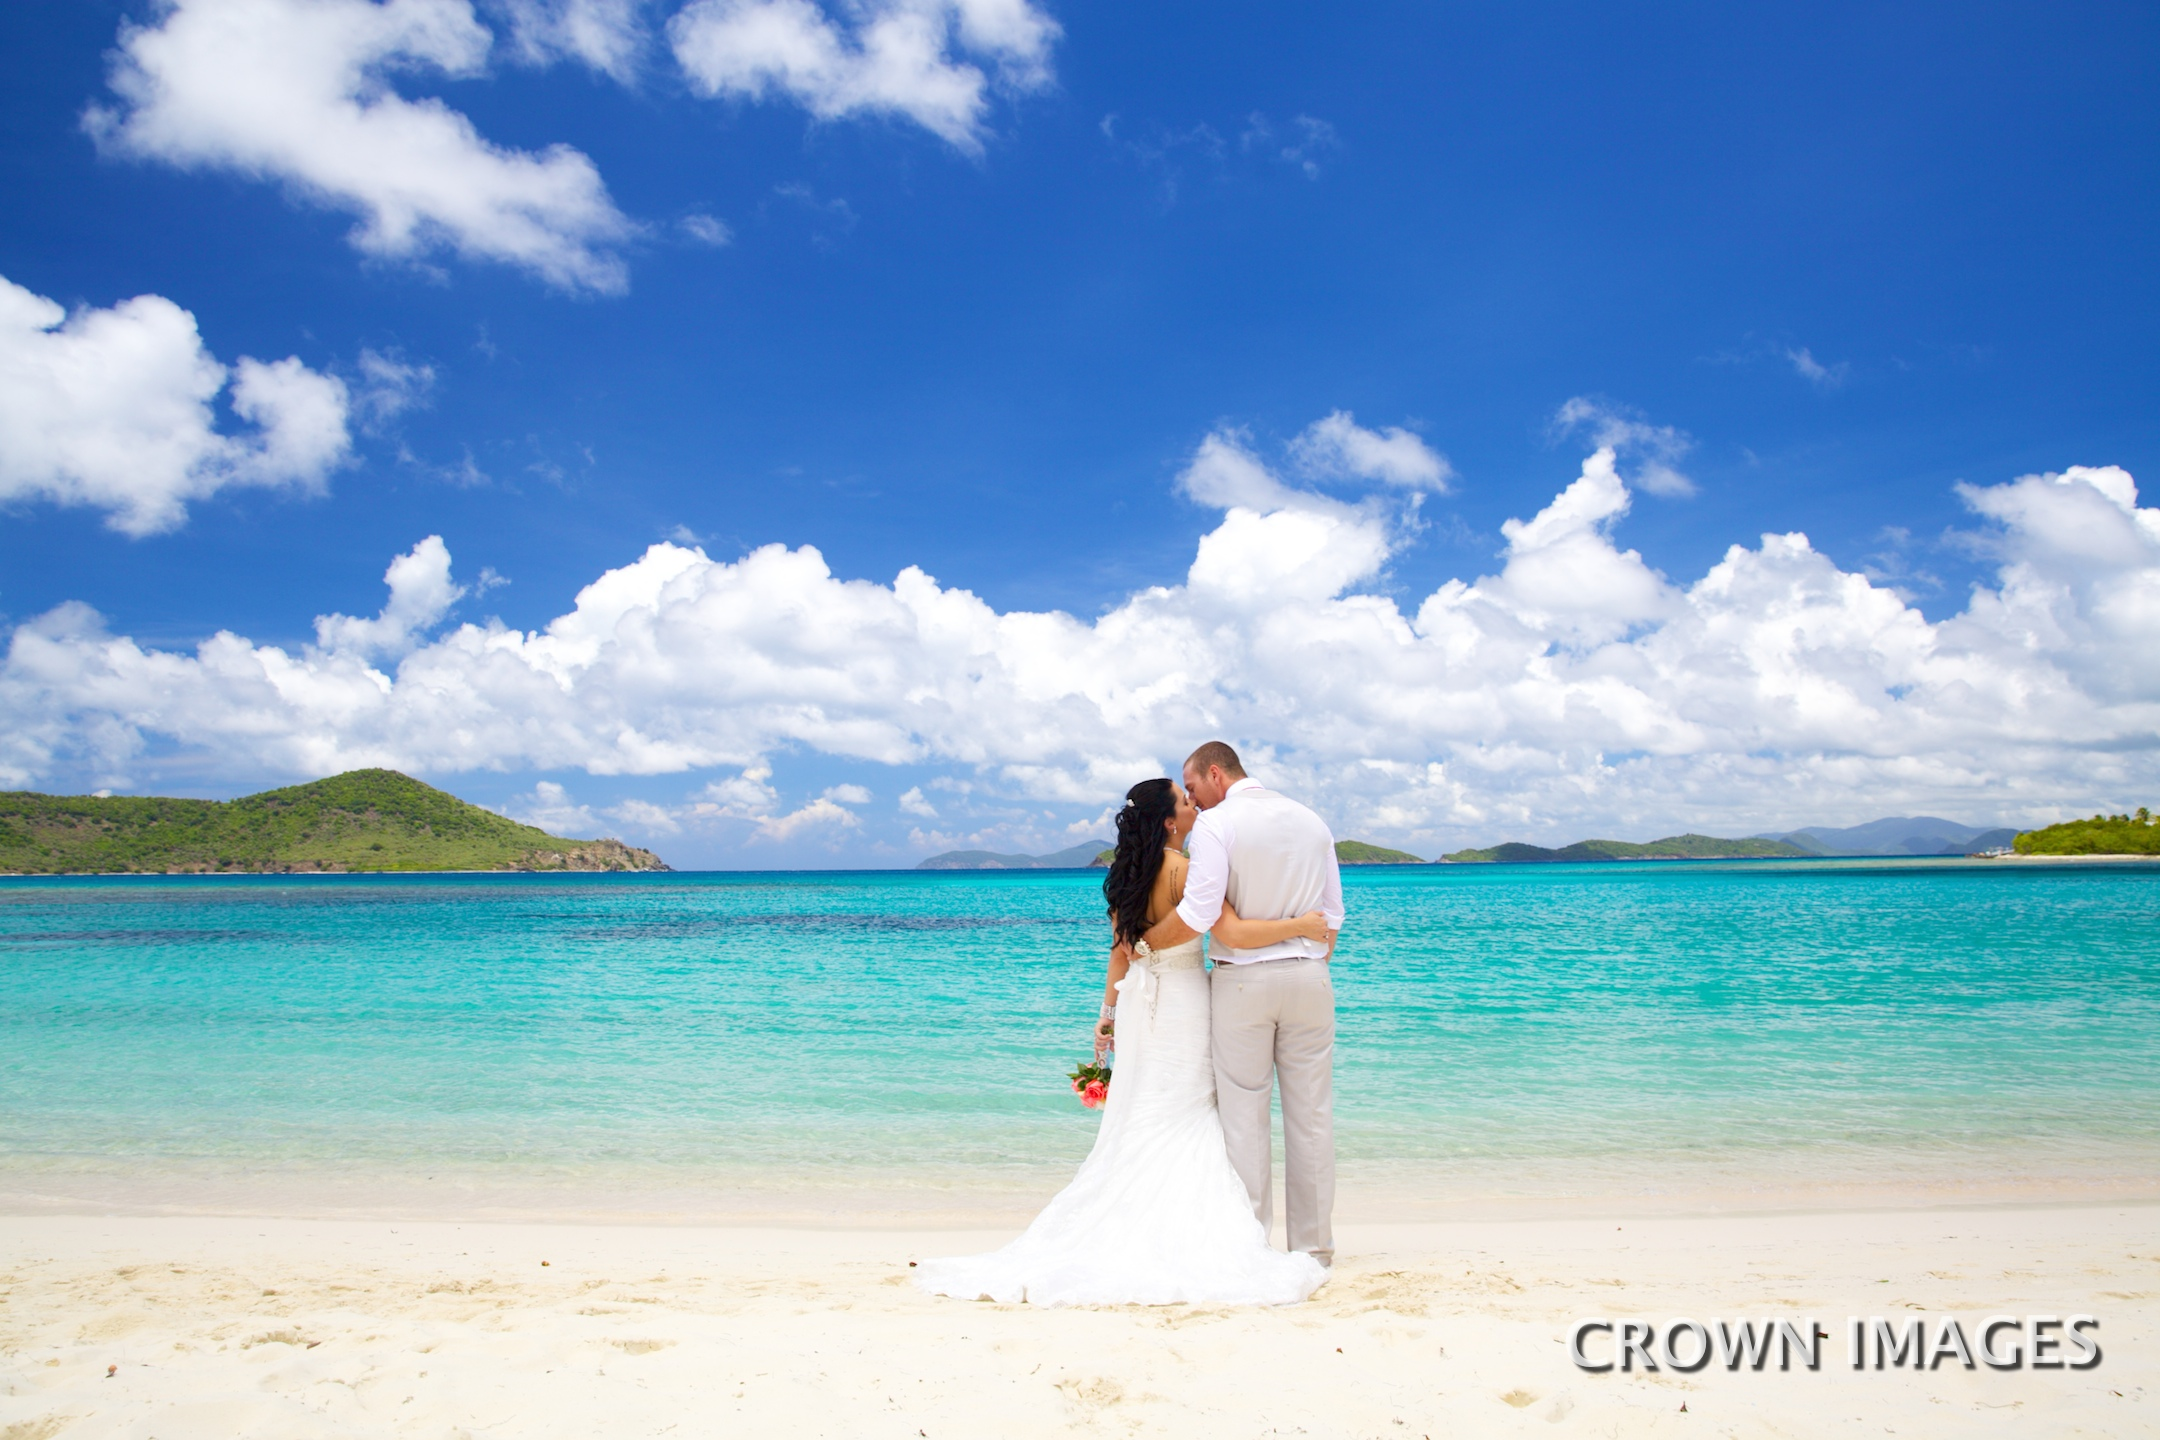 st thomas wedding at lindquist beach photo by crown images